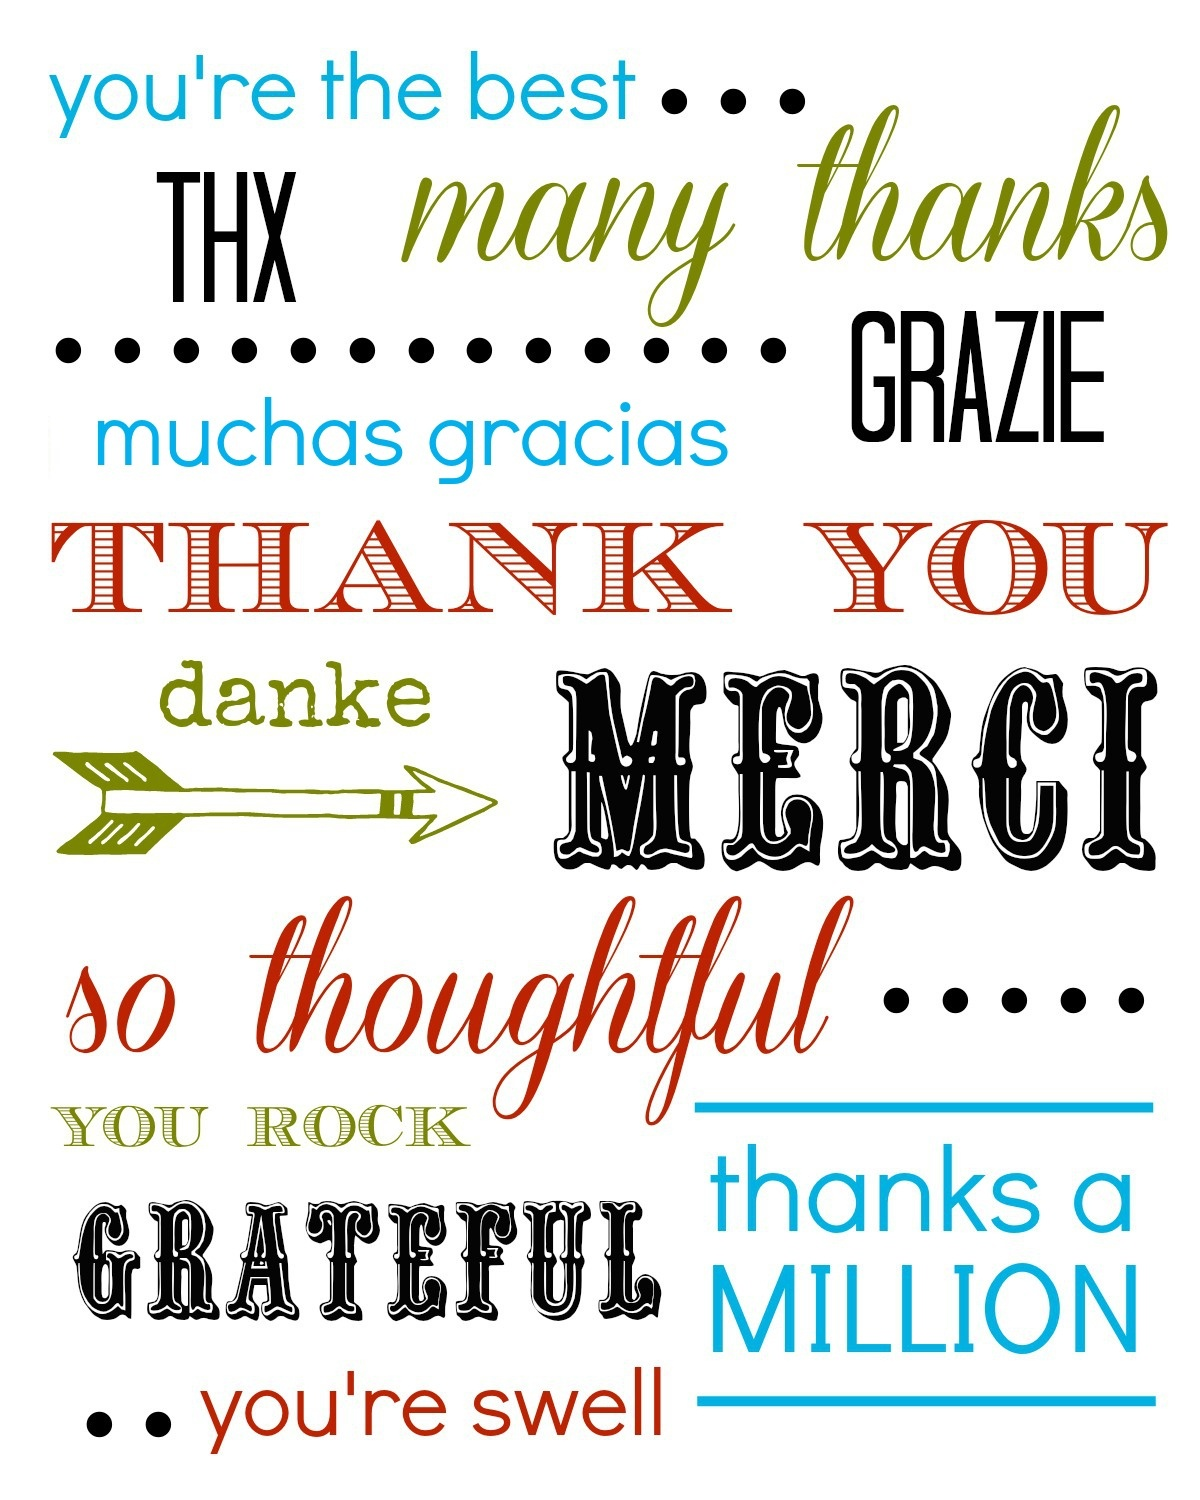 Thank You Card Free Printable - Thank You Card Free Printable Template